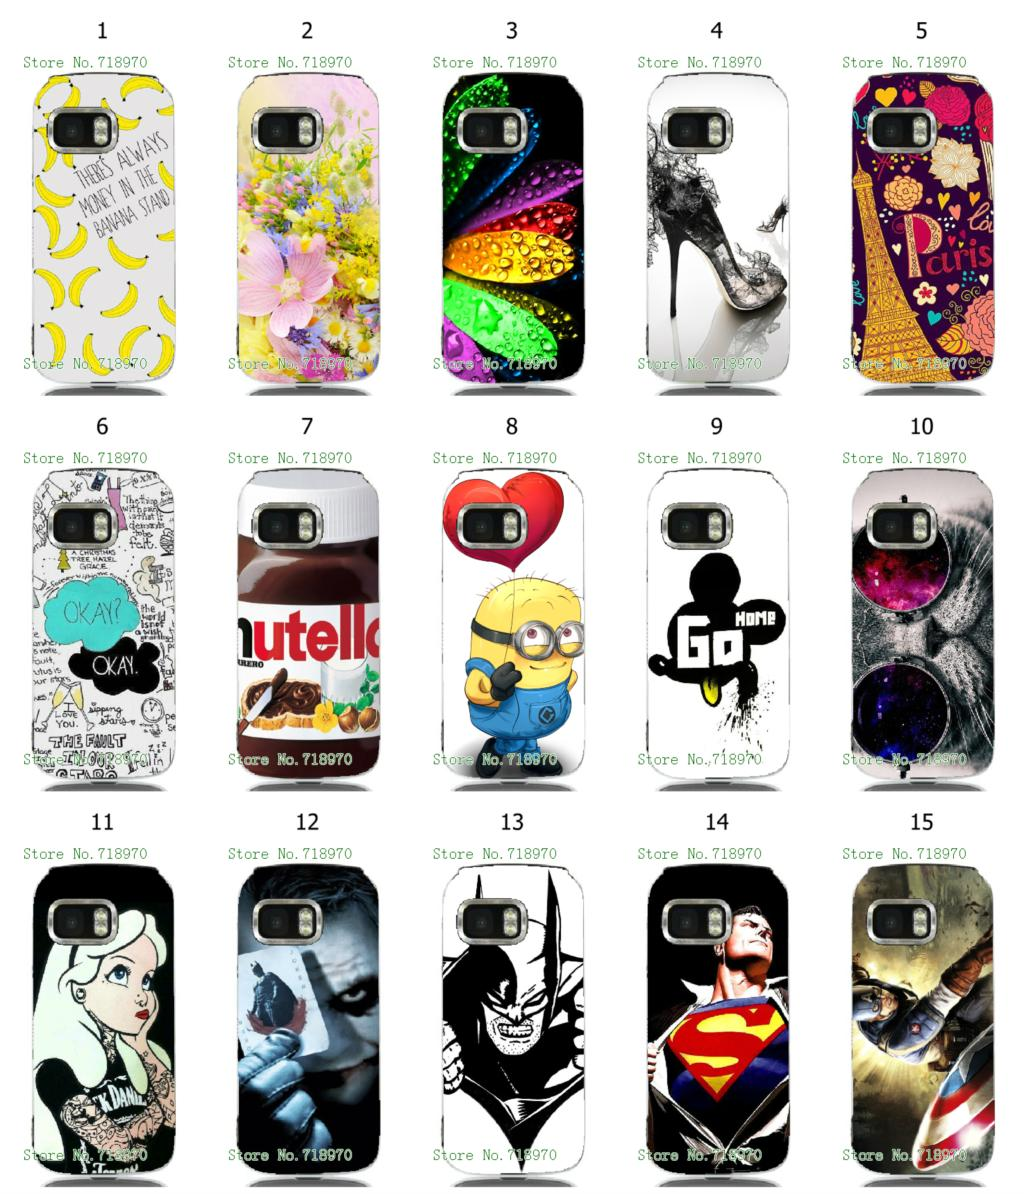 batman Captain America hybrid retail 15designs new arrival white hard mobile phone bags & cases for NOKIA 5800 free shipping(China (Mainland))